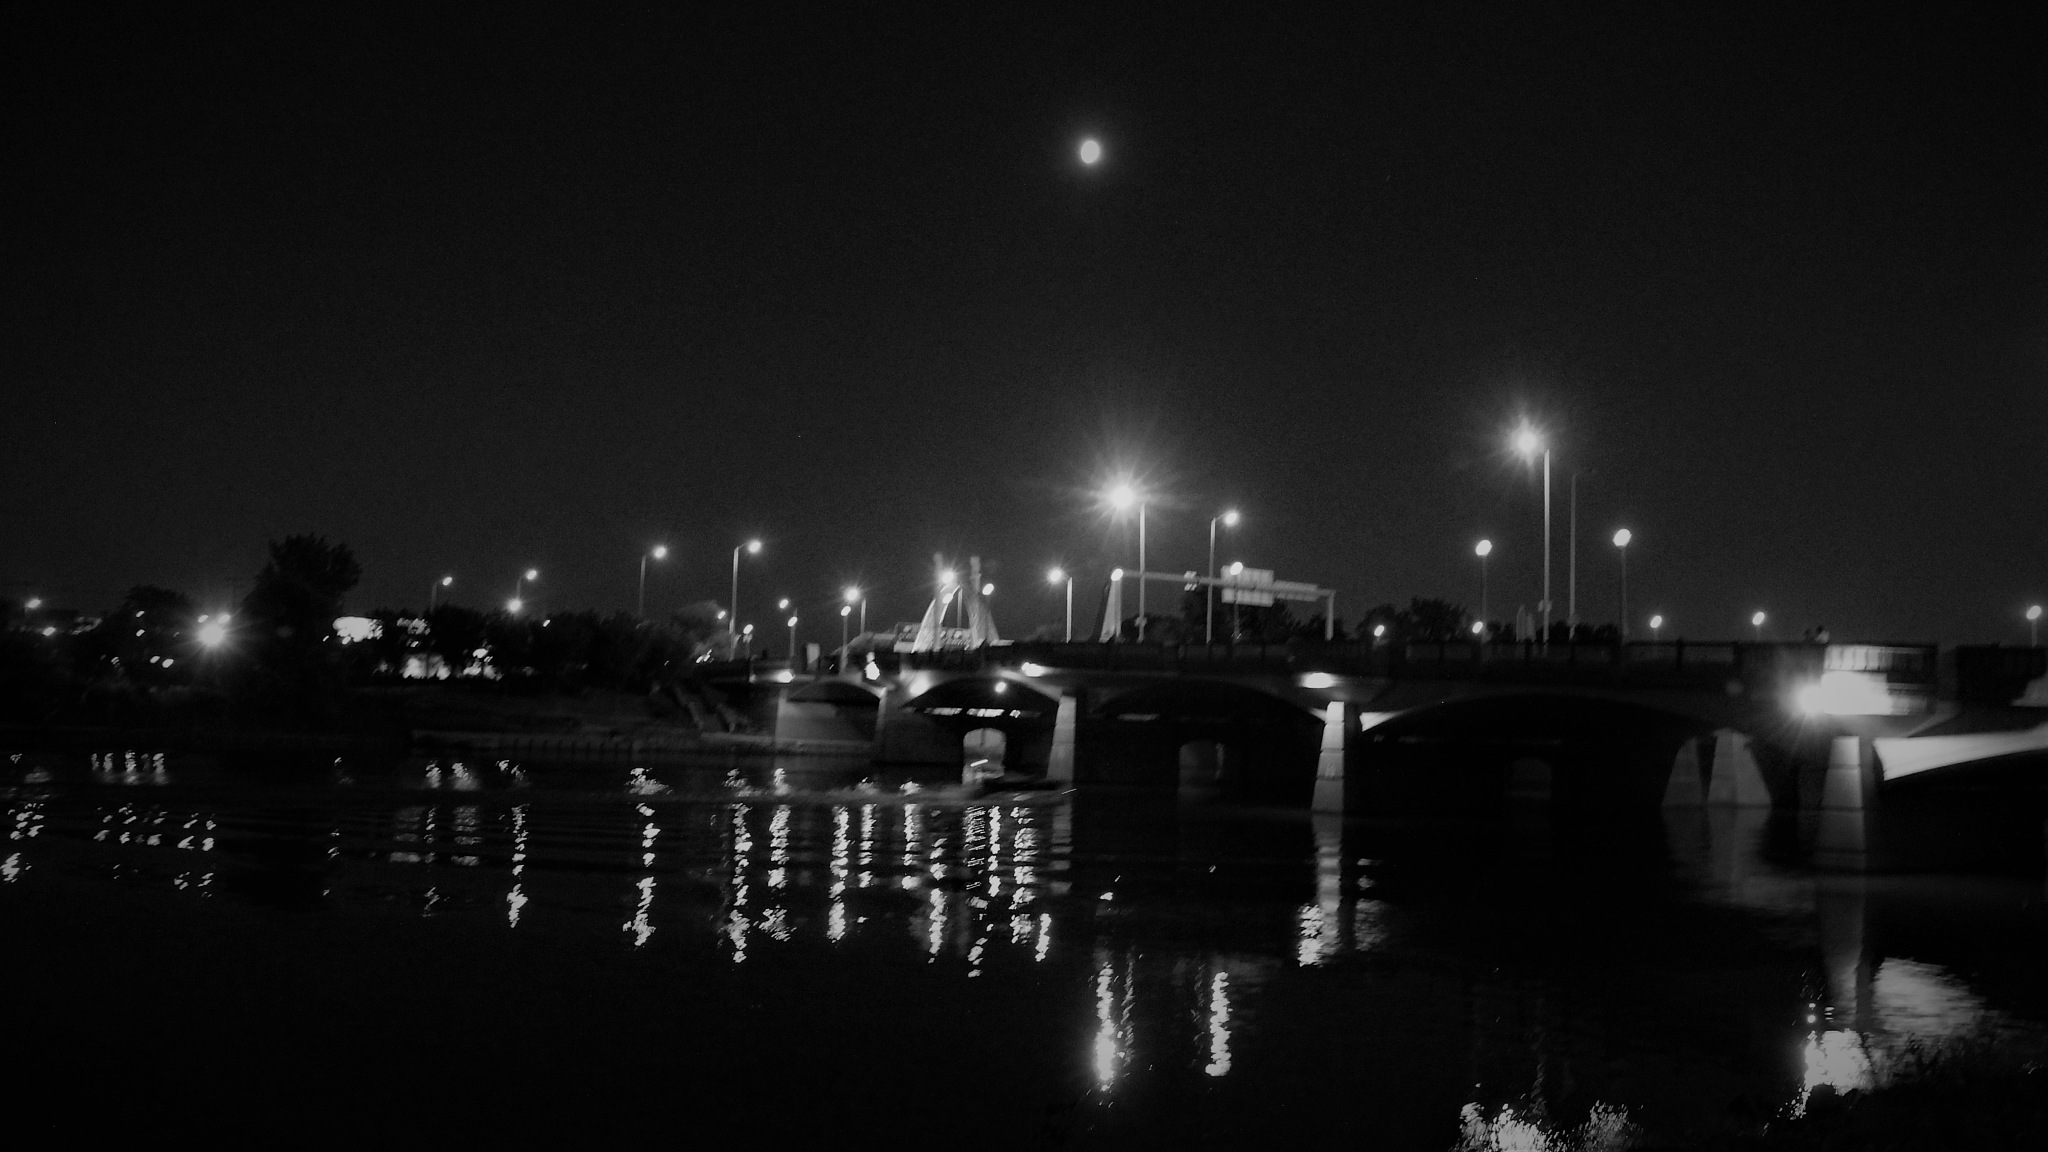 Full Moon - Black and White by David Imrie